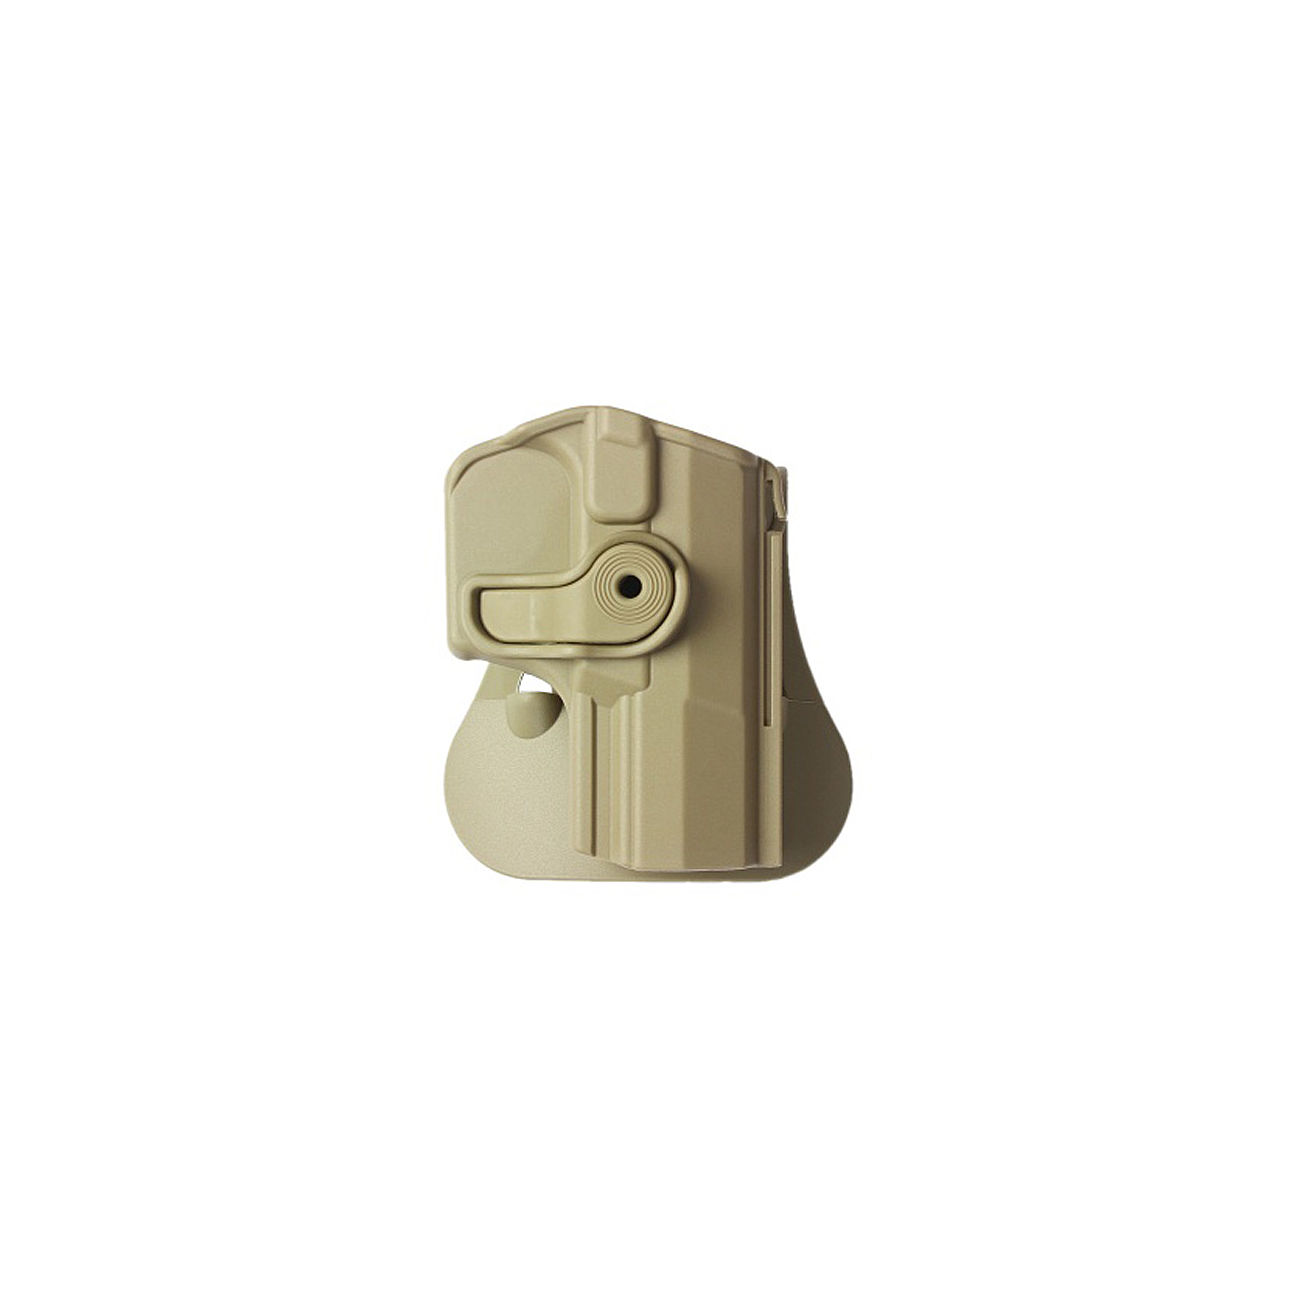 IMI Defense Level 2 Holster Kunststoff Paddle für Walther P99 tan 0